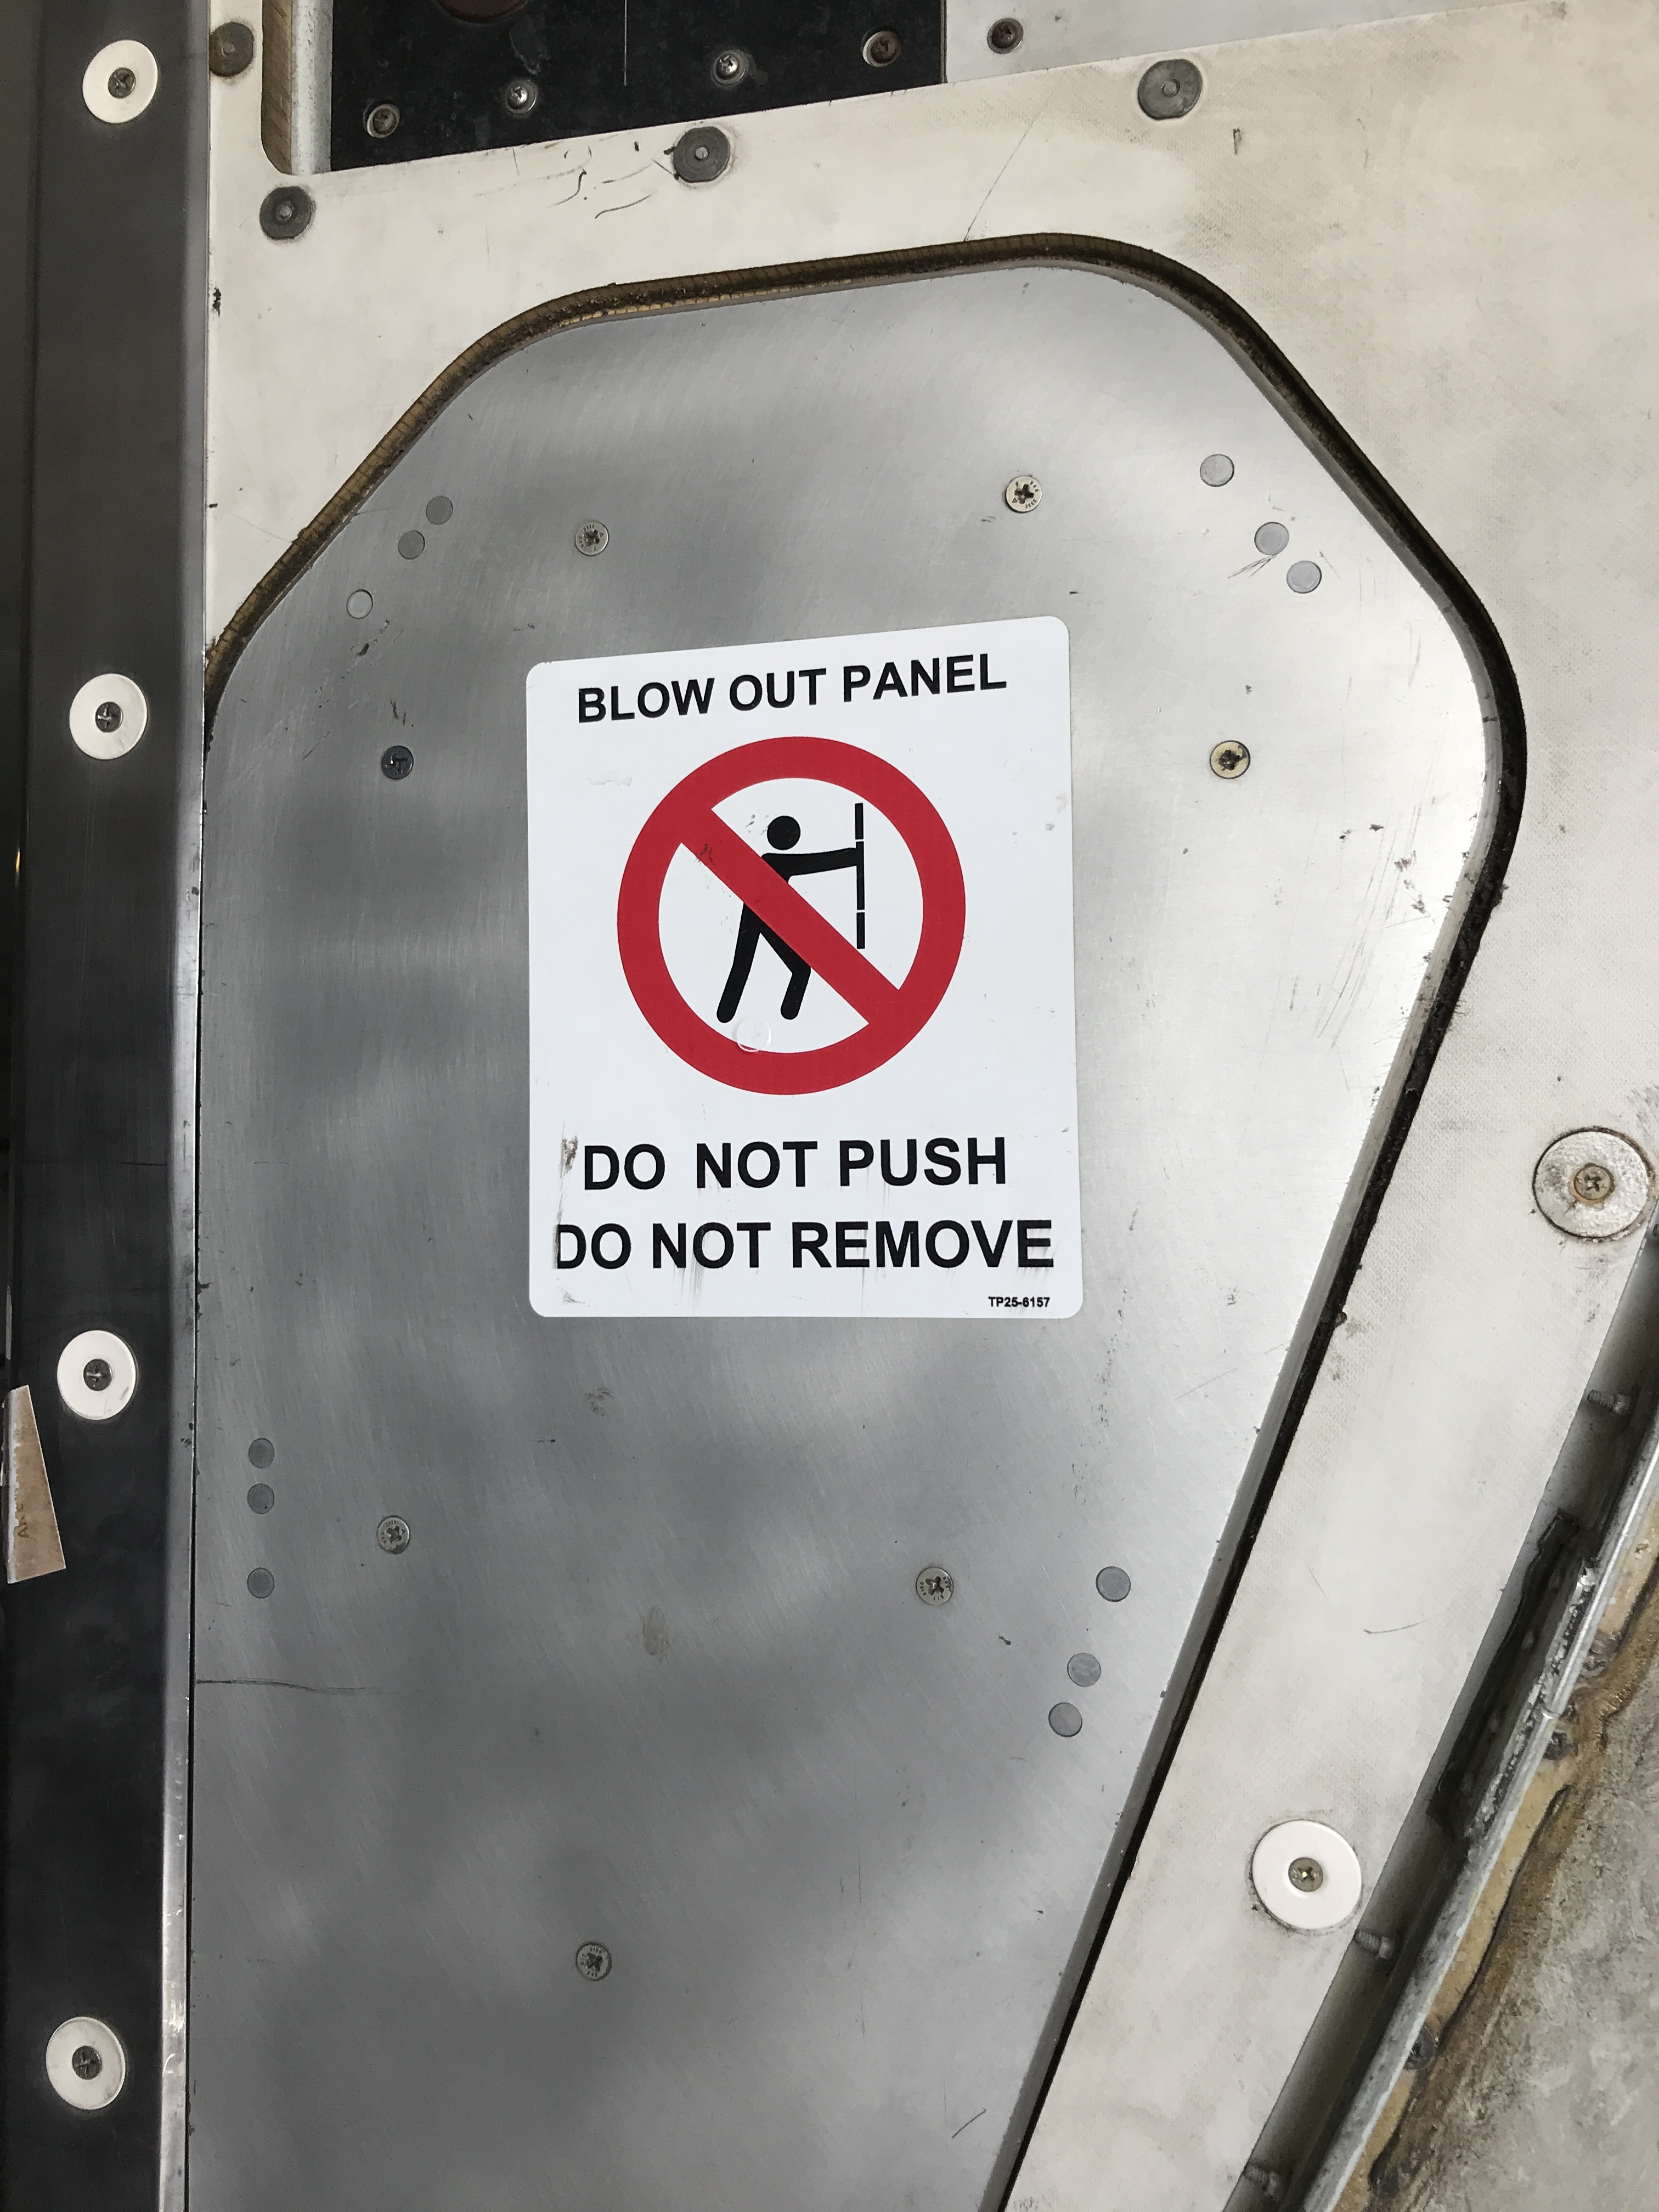 Blow out panel do not remove on A330